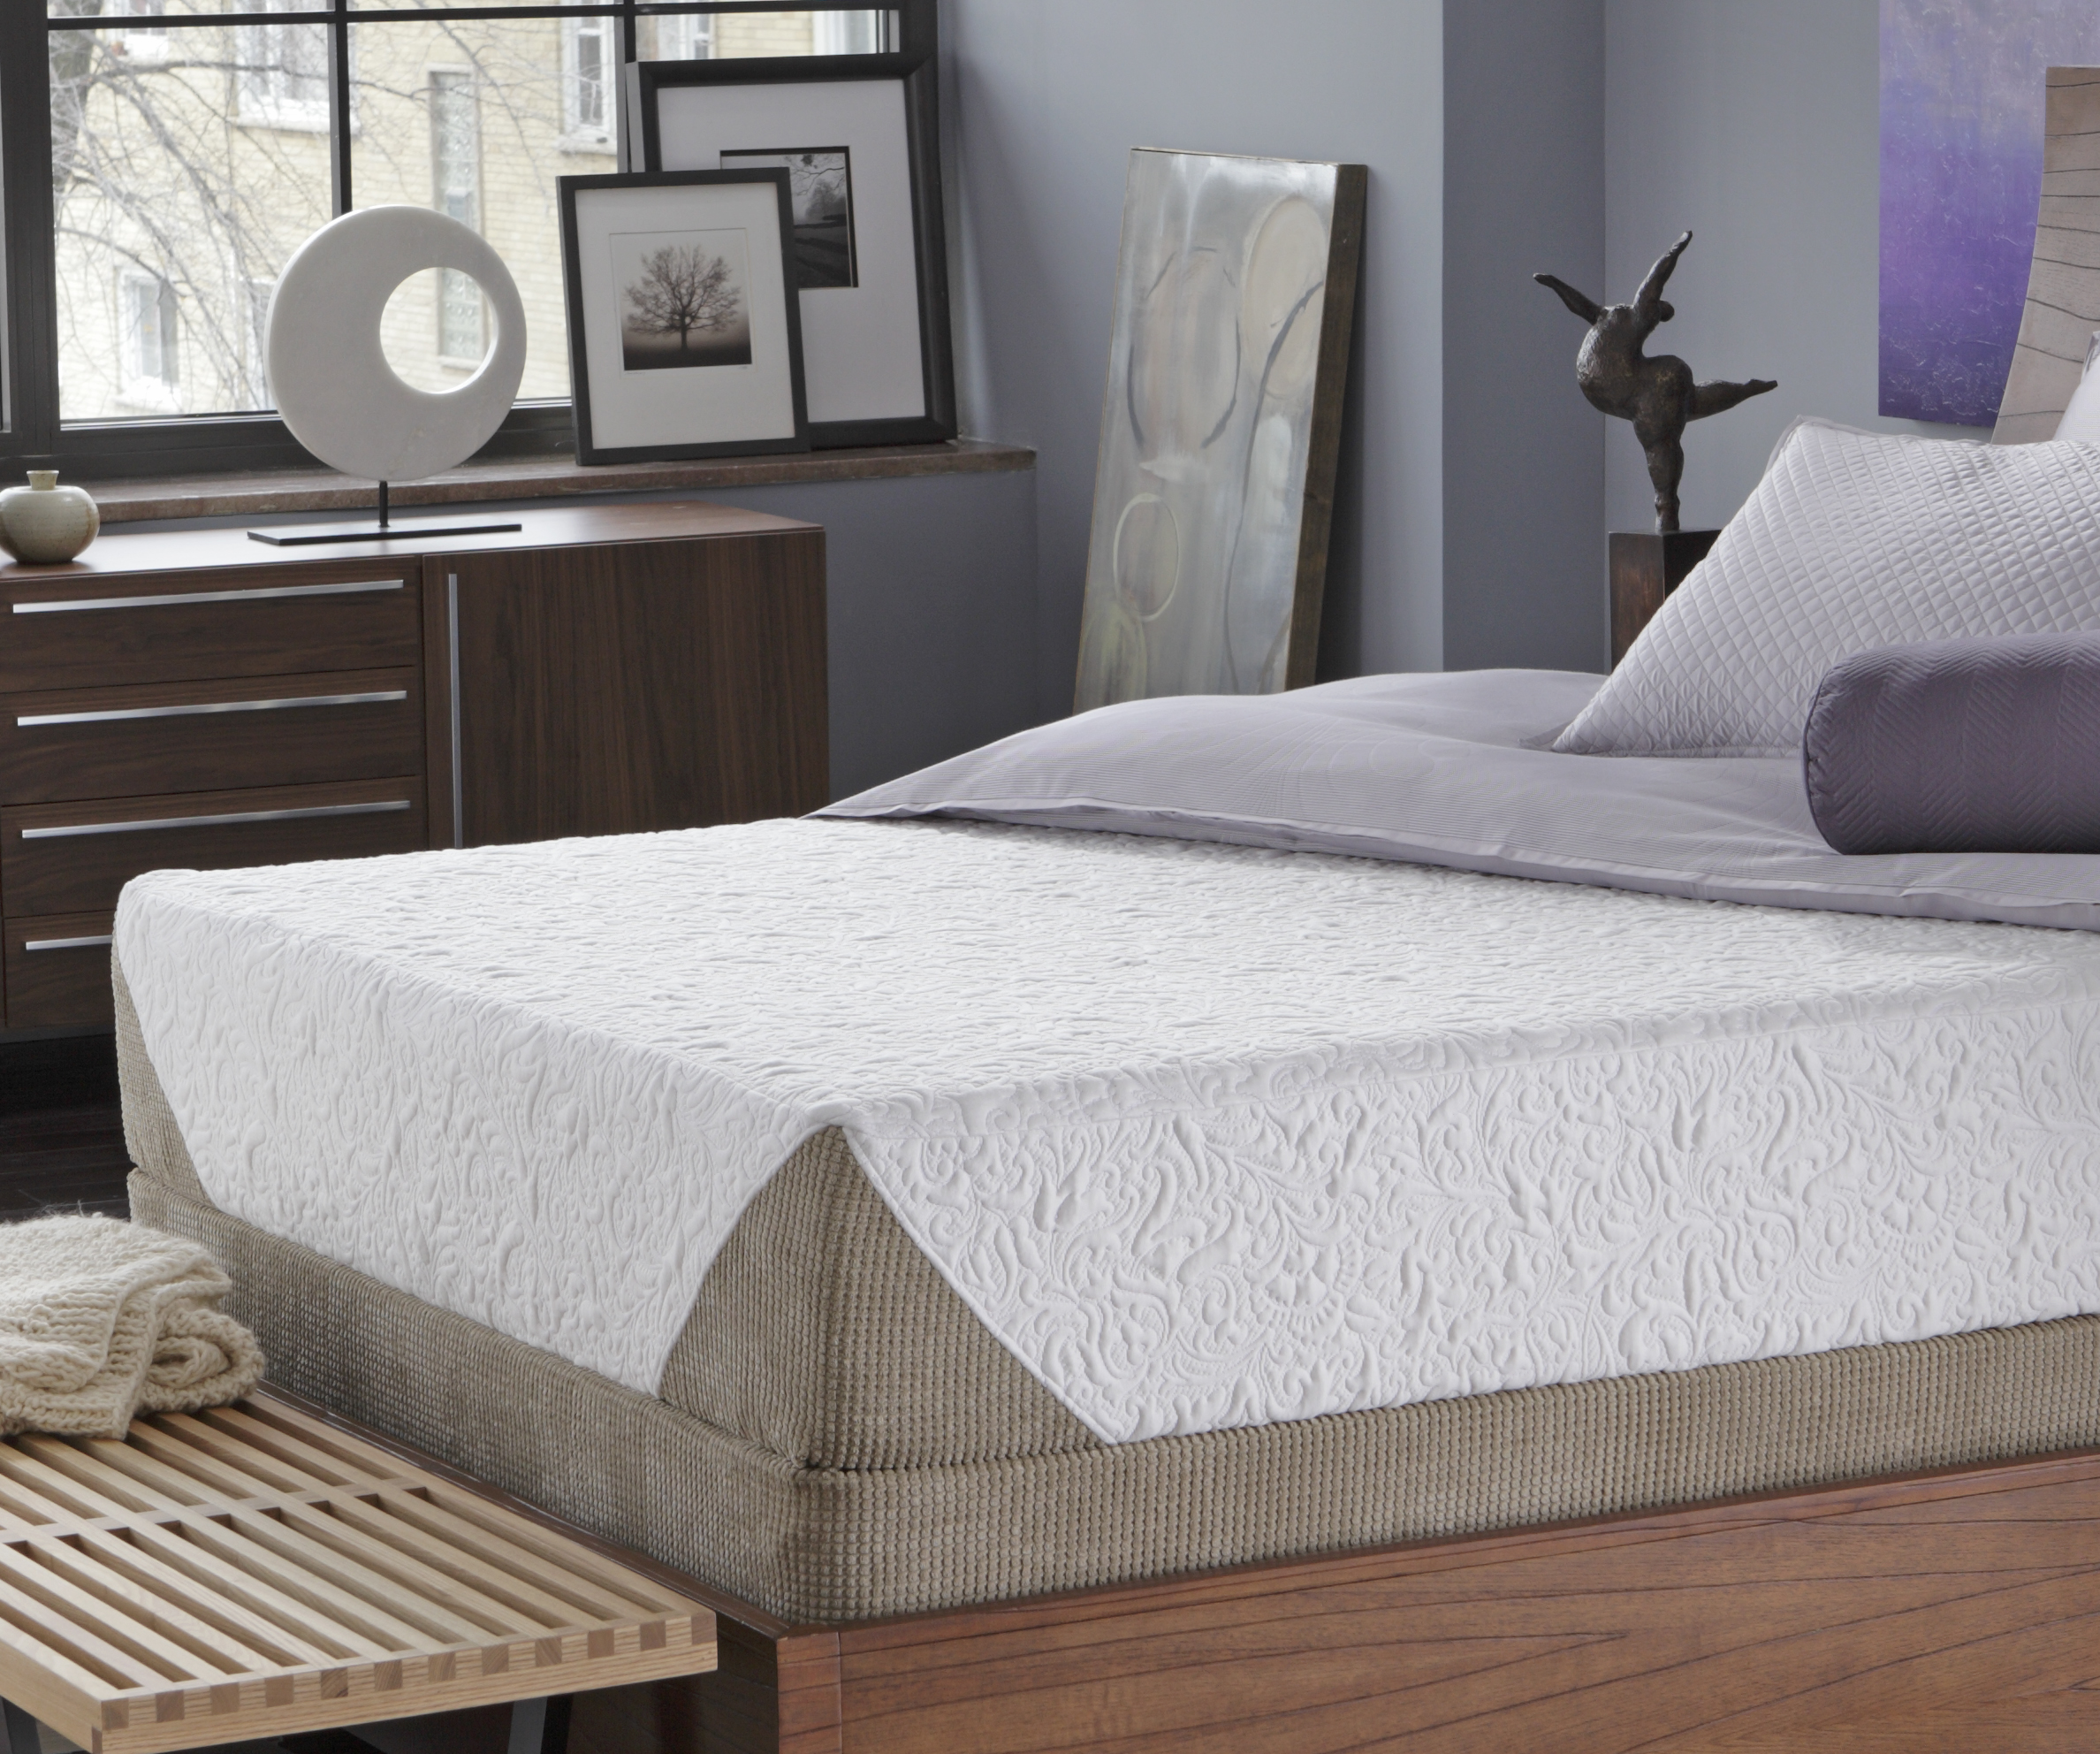 Serta Icomfort Reviews >> Serta Icomfort Mattress Reviews Goodbed Com